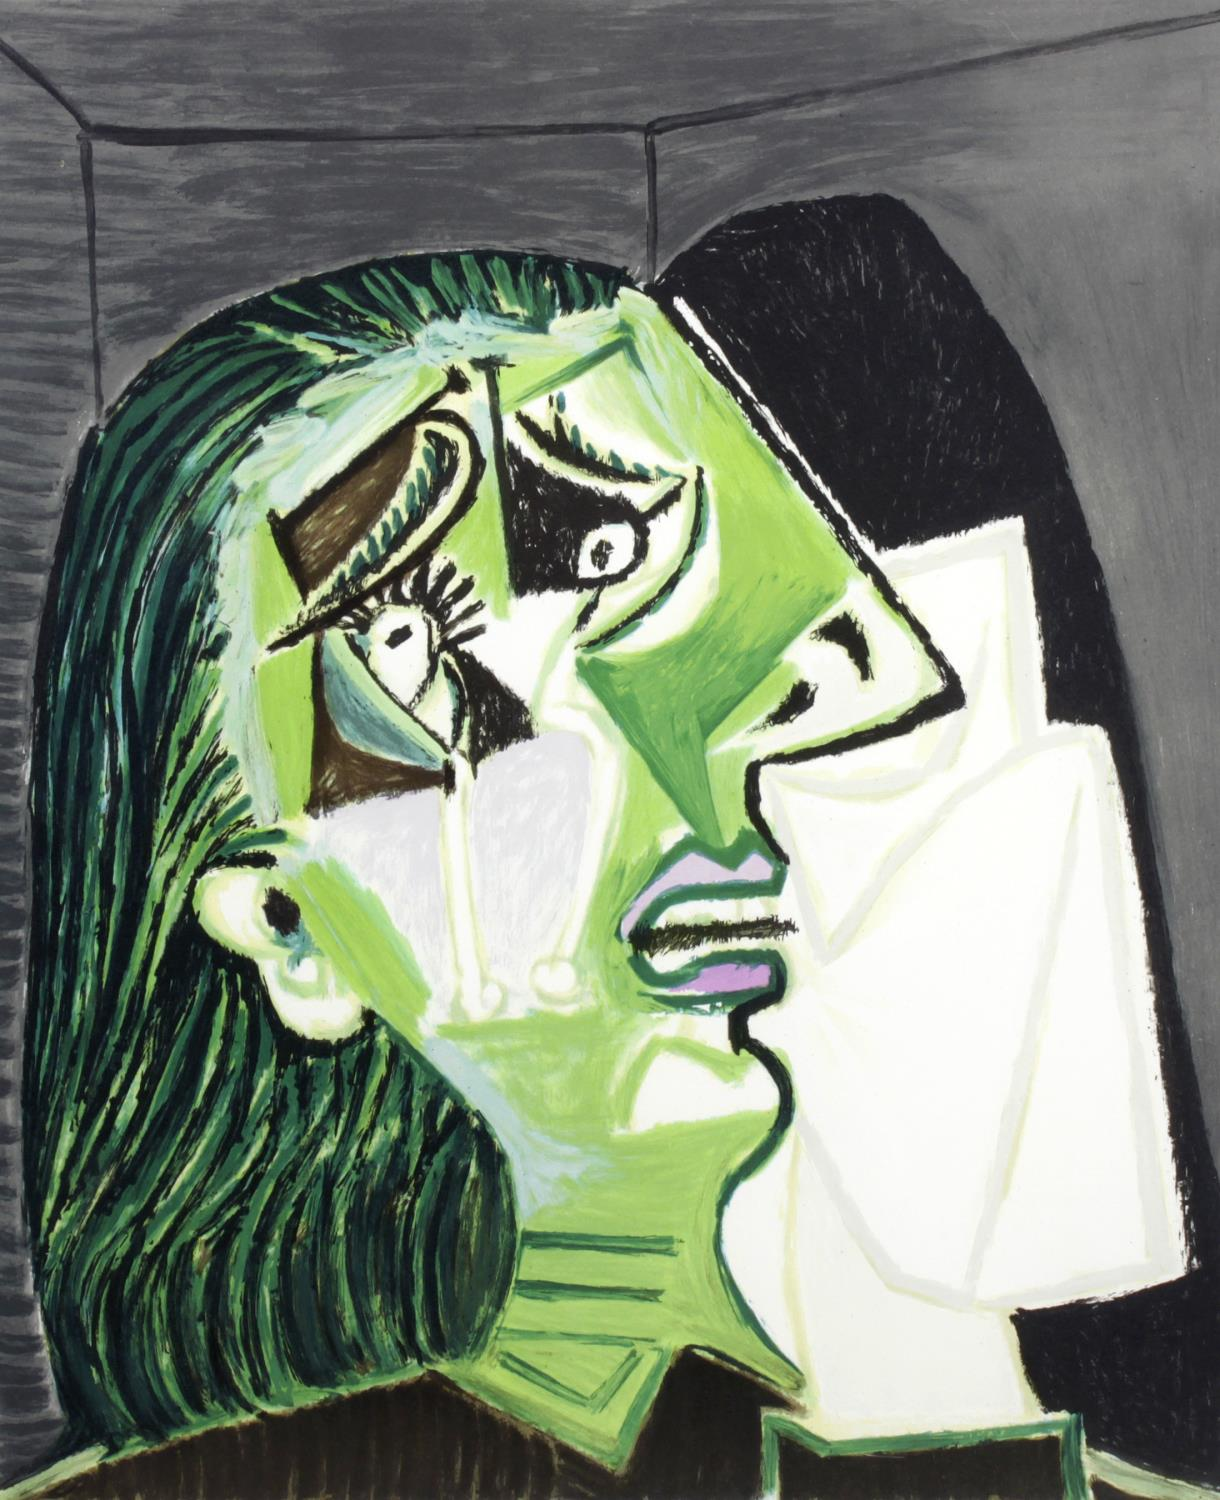 """After Pablo Picasso, (1881-1973), Femme au Mouchoir, ('Weeping Woman'), after the 1937 original, a 'Picasso Estate Collection' print published 1979-1982 by authorisation of Marina Picasso, granddaughter of the artist, a coloured lithograph by Laurent Marcel Salinas on Arches paper, artist's proof (numbered in pencil AP26, from an edition of 34 and a subsequent edition of 500), with blindstamp lower left, inscribed in pencil lower right 'Collection Marina Picasso', image size 21"""" x 17.5"""", (53cm x 44.5cm), in card mount and glazed black gallery frame."""